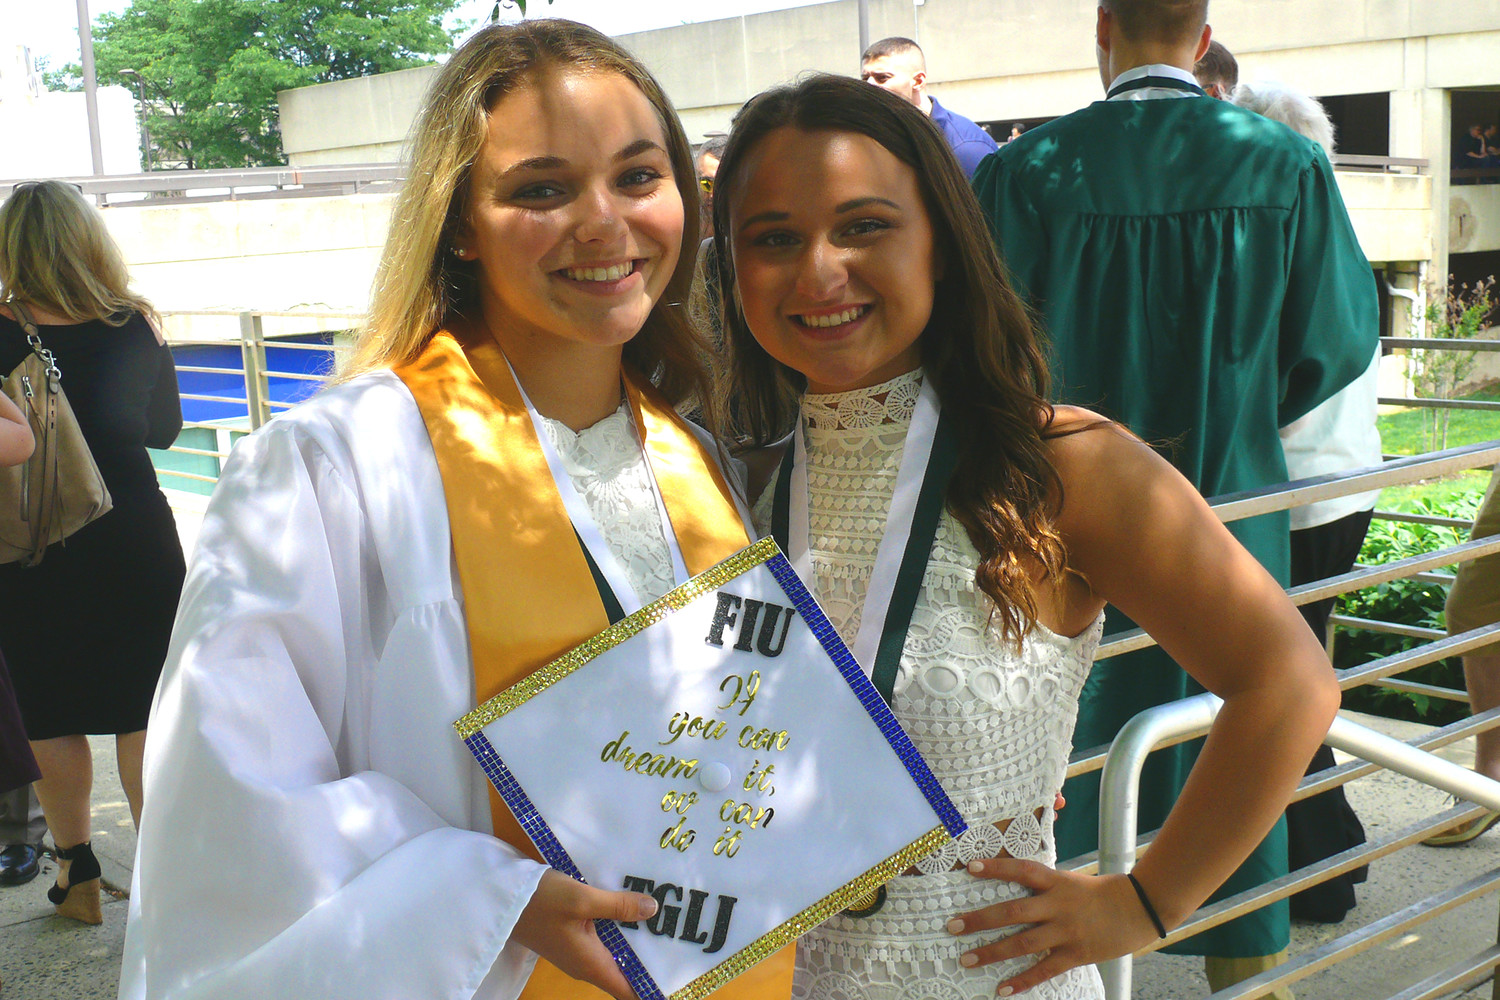 Mariah Hefferman, left, and Madison Anne Carollo were all smiles after graduating from Seaford High School.